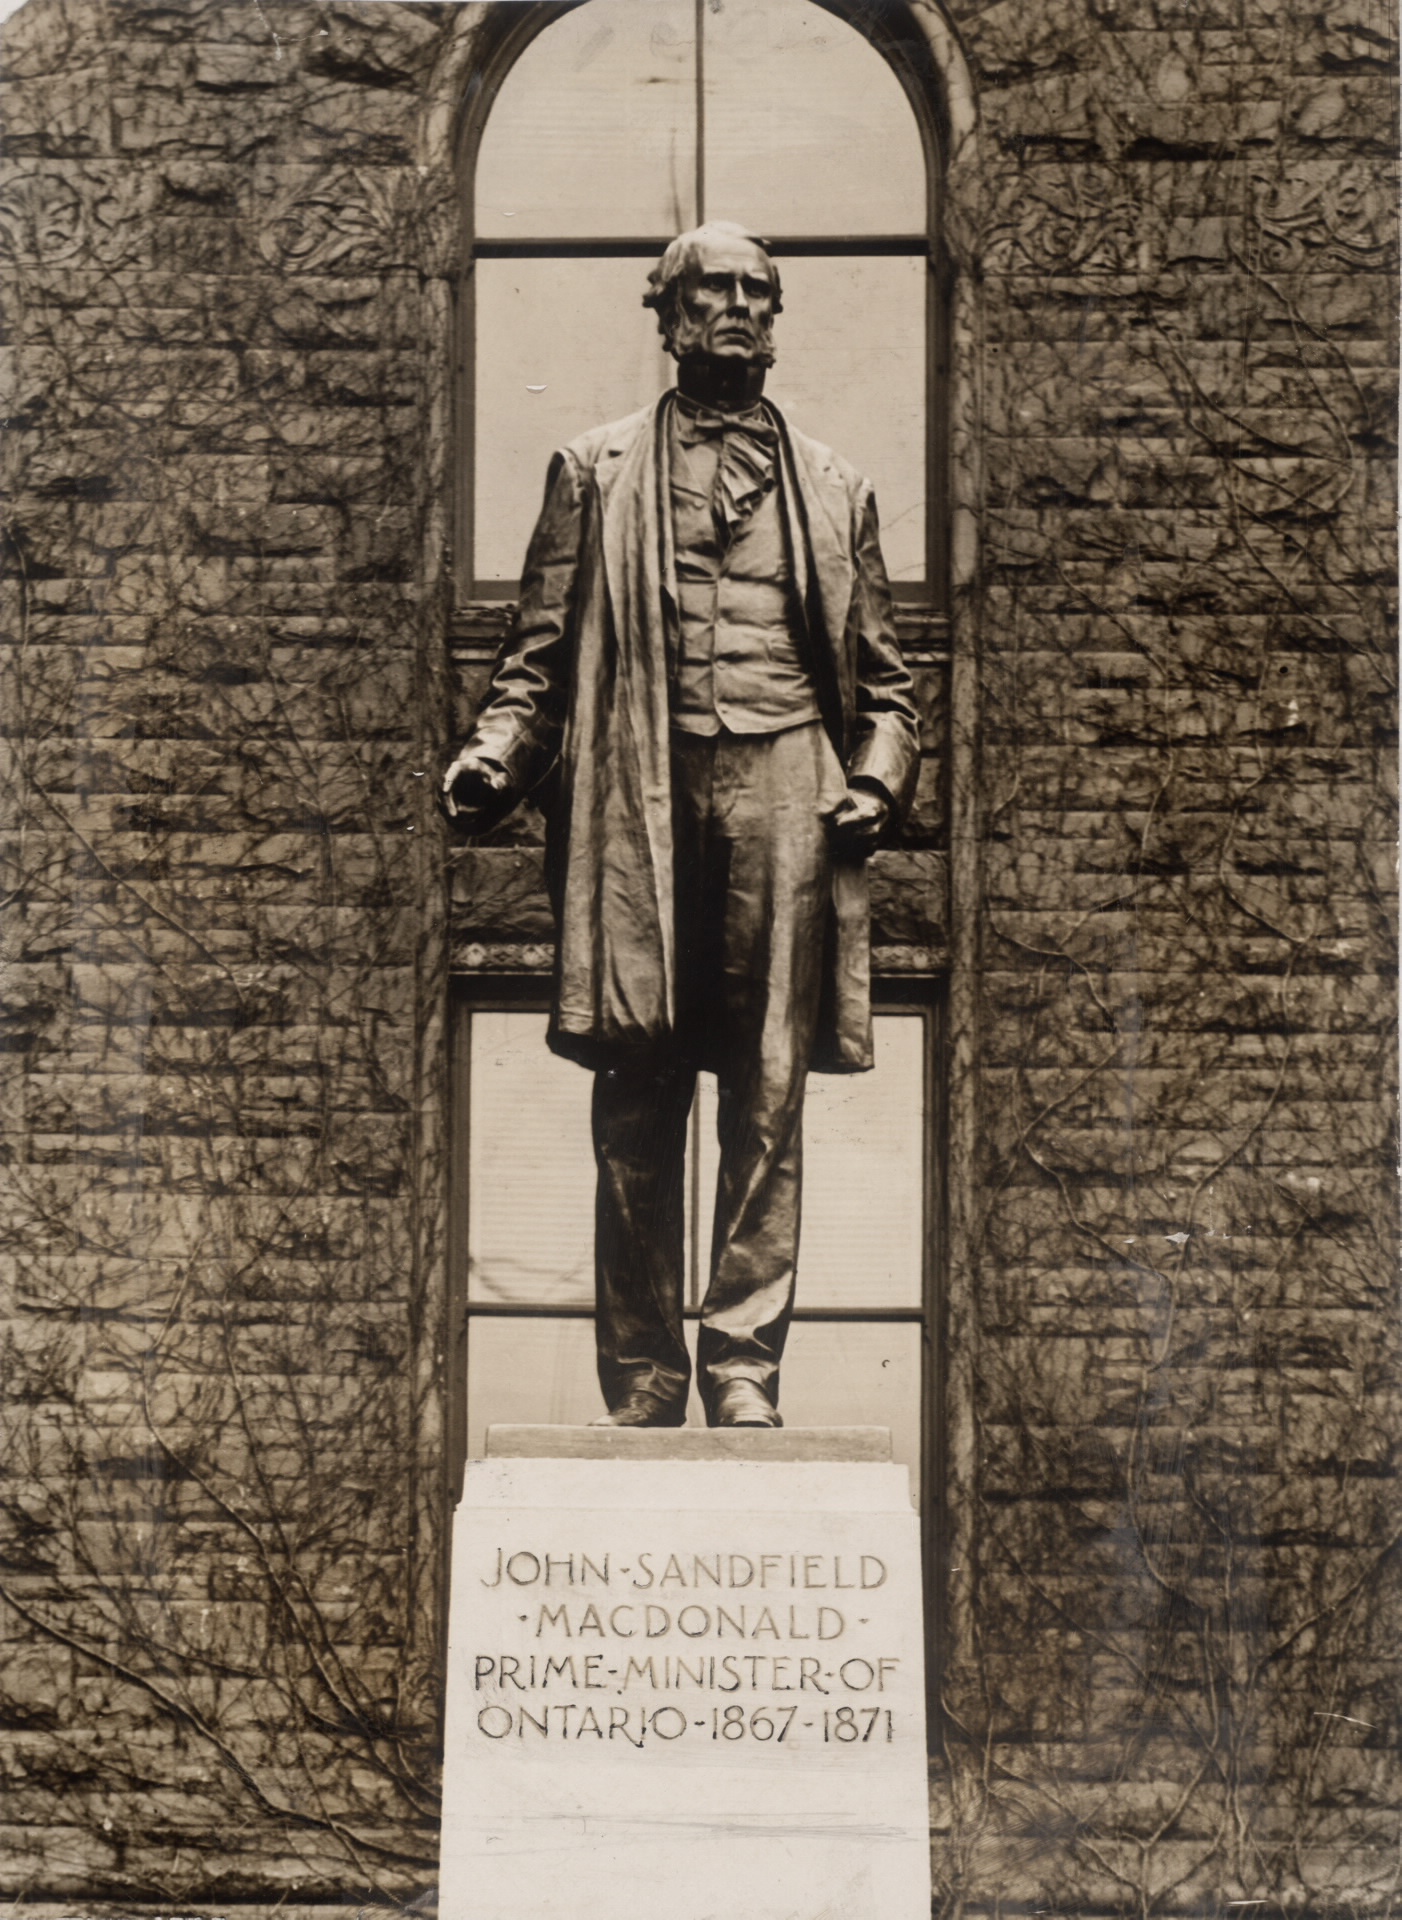 a statue of Ontario's first premier, James Sandfield Macdonald